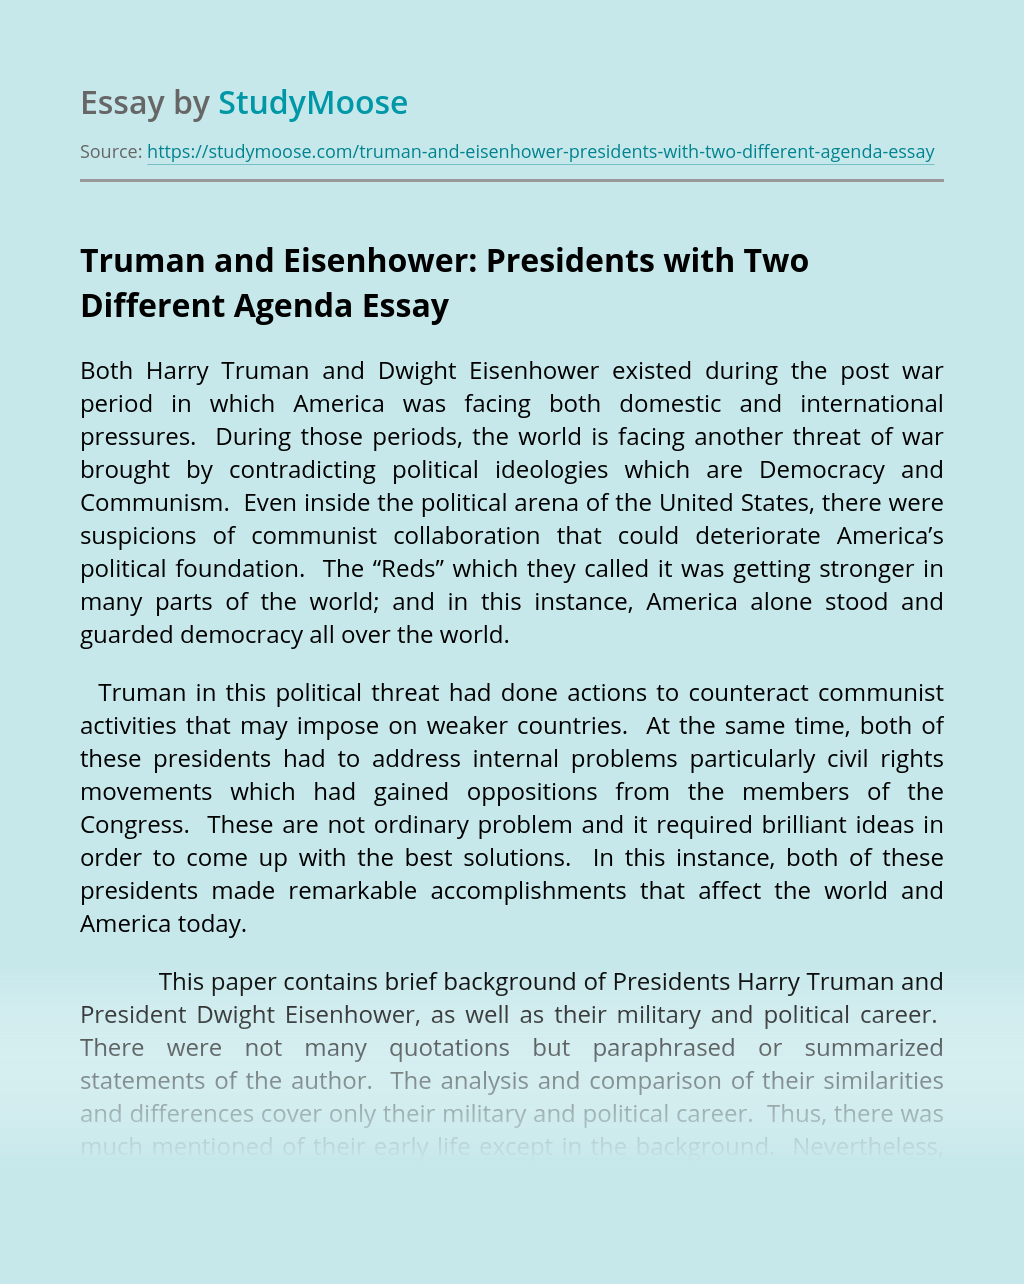 Truman and Eisenhower: Presidents with Two Different Agenda